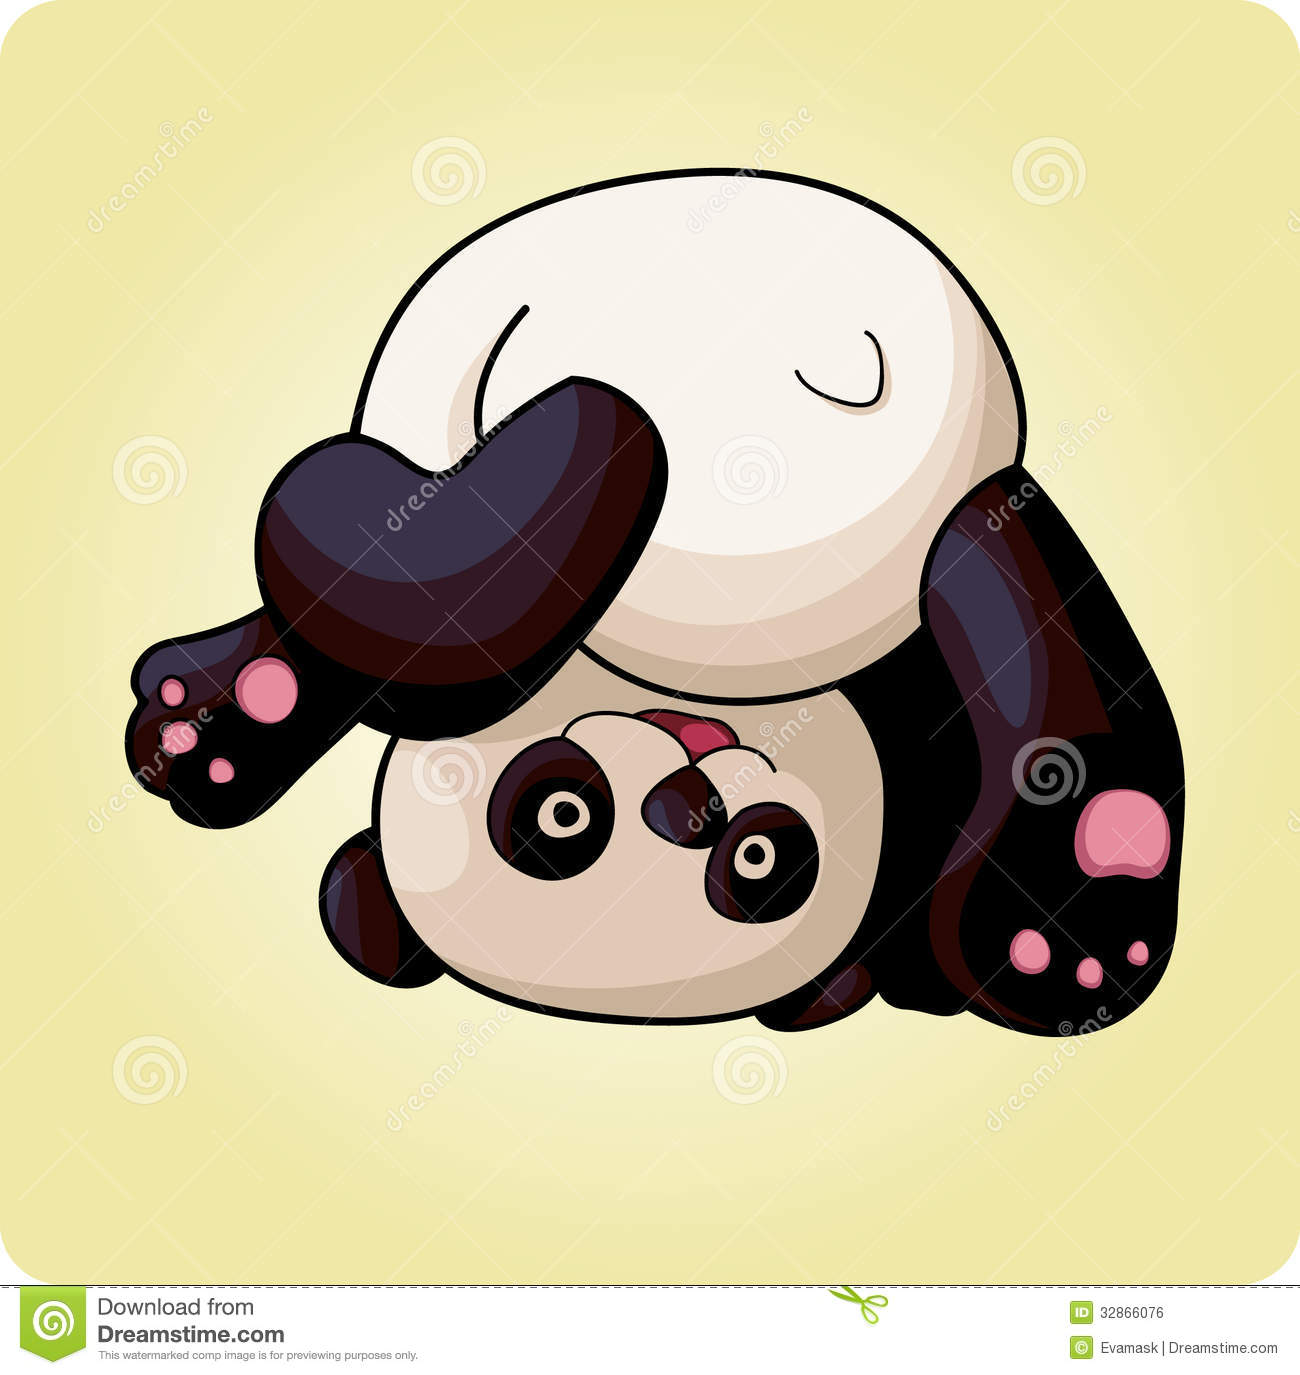 Funny Panda Does A Somersault Royalty Free Stock Image   Image